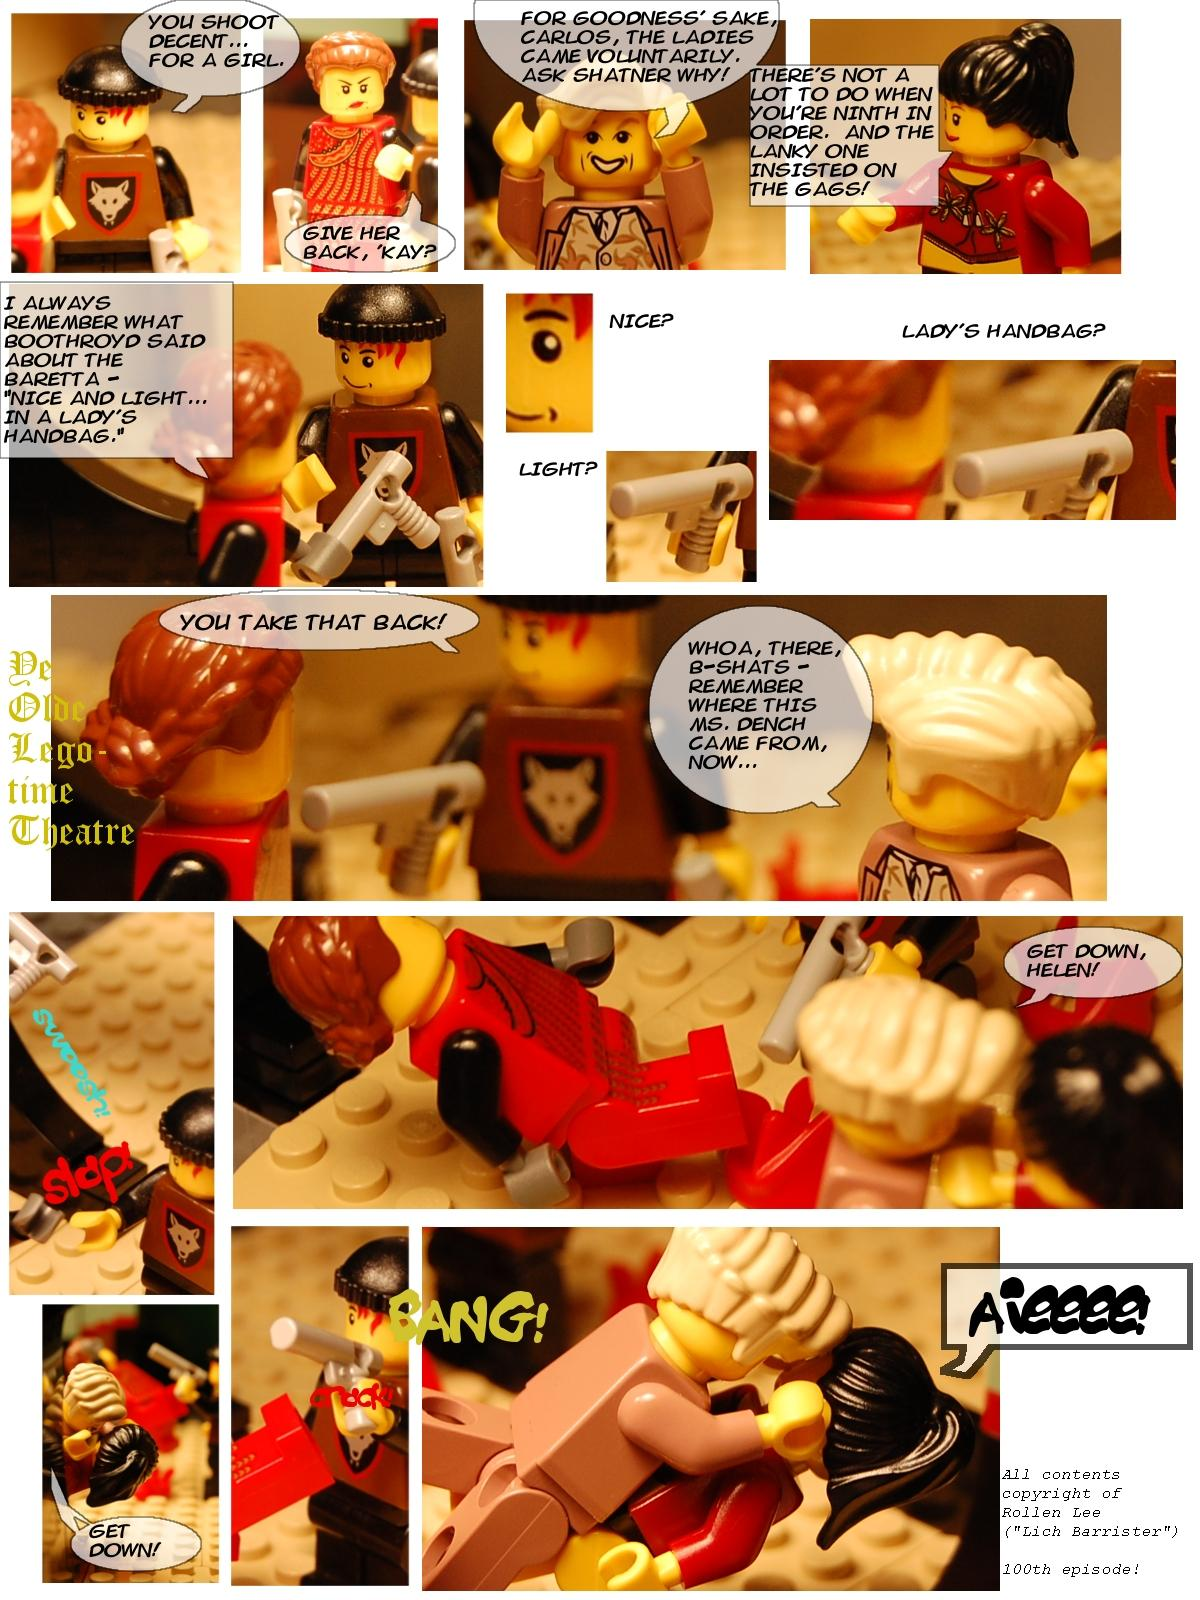 13 March 2010 - One hundredth strip!